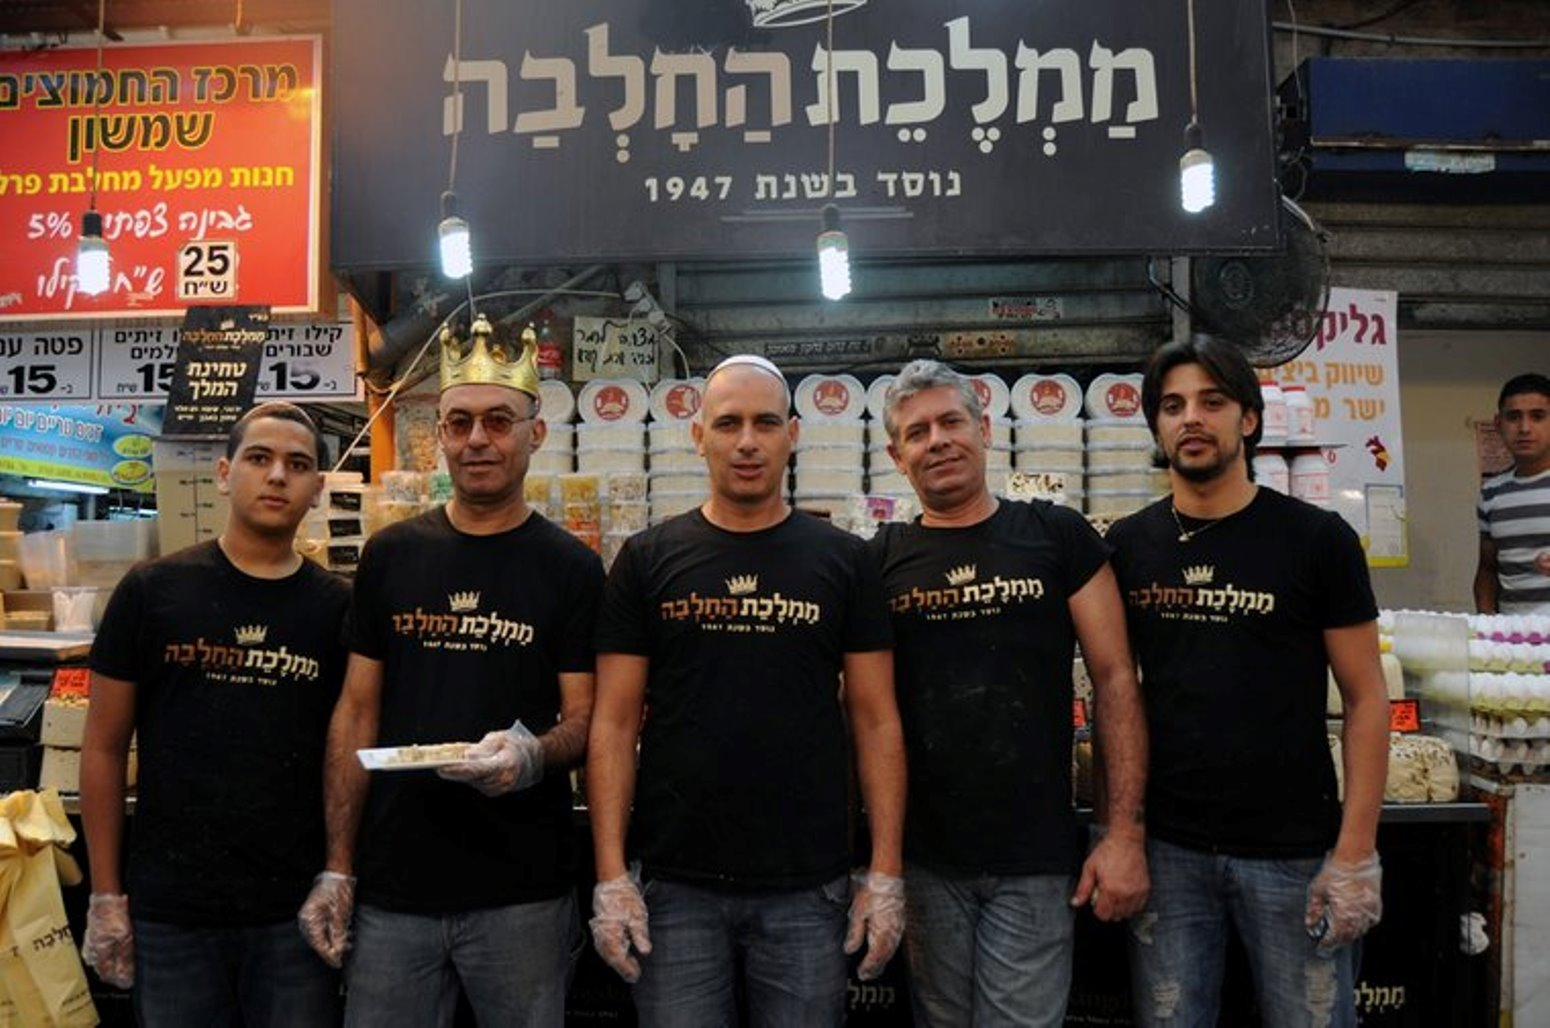 Halva Kingdom in Machane Yehuda market in Jerusalem. Photo courtesy of Halva Kingdom